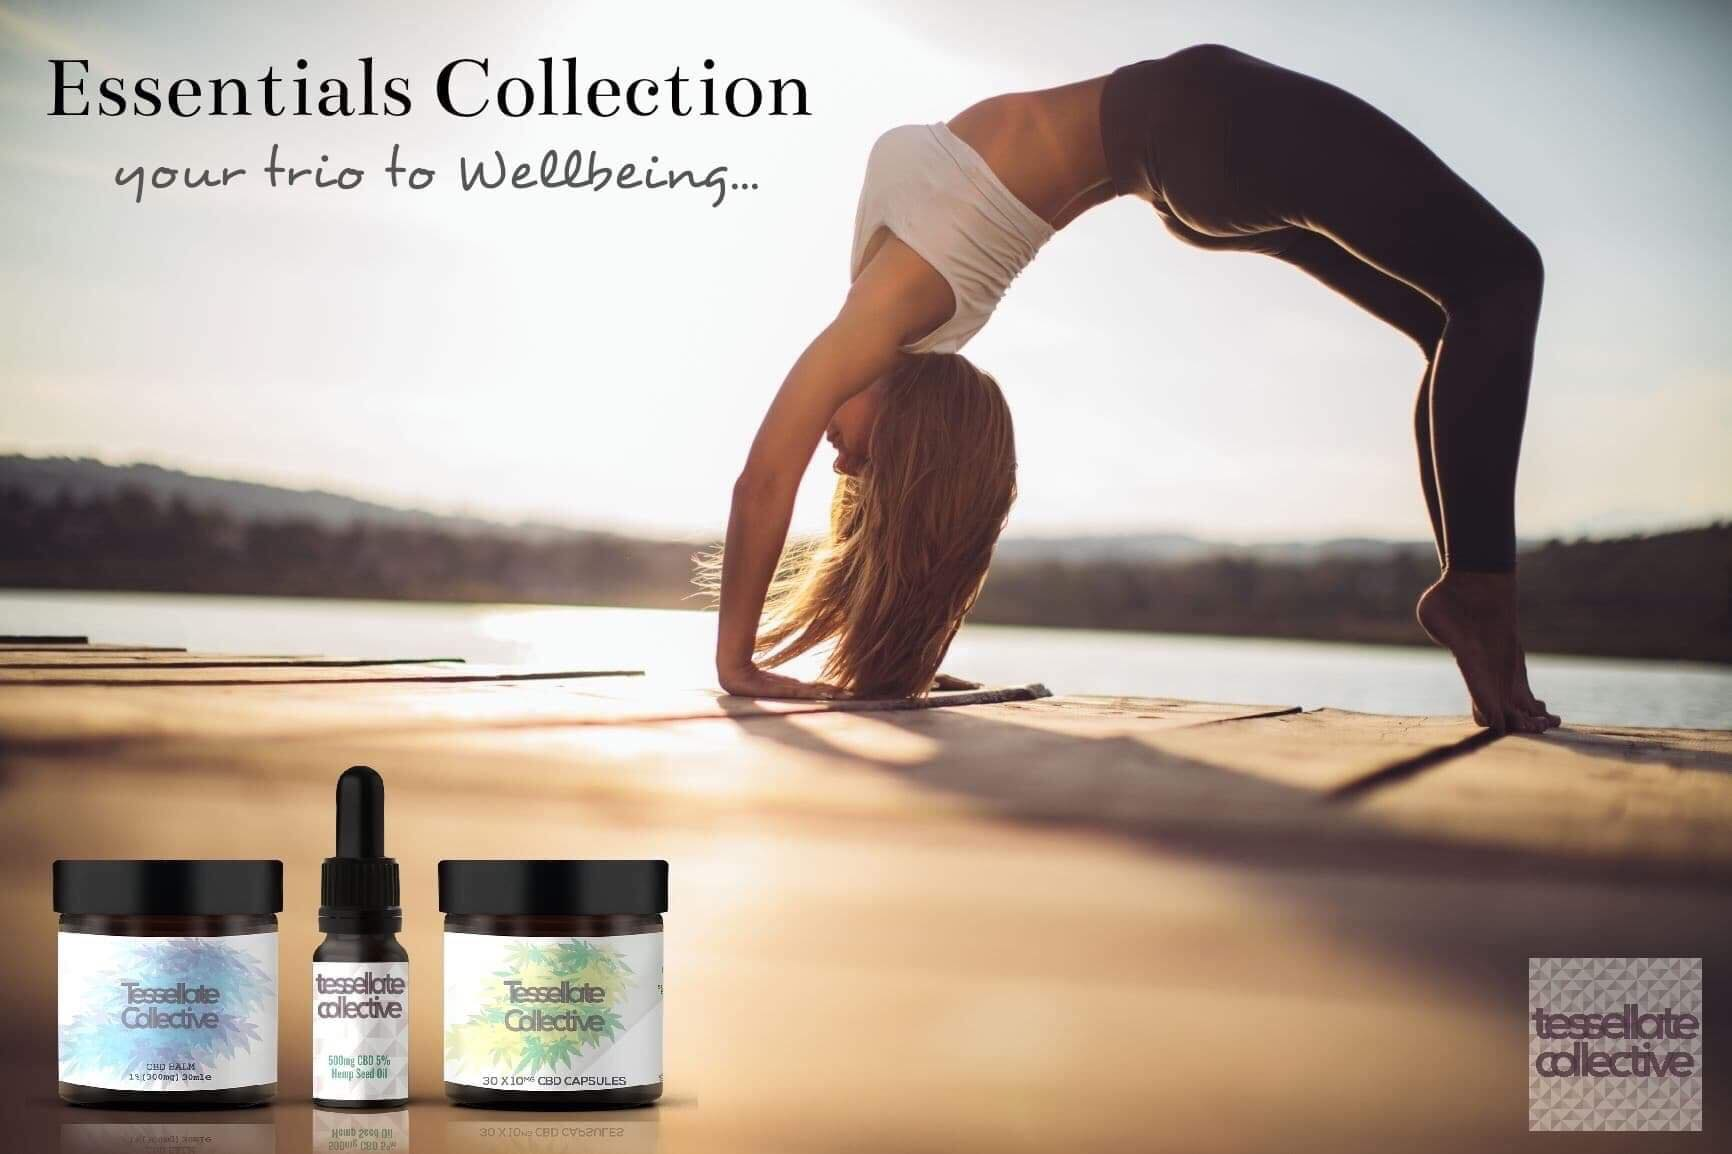 New Products Launched at Tessellate Collective; Bundle Discounts on CBD Products